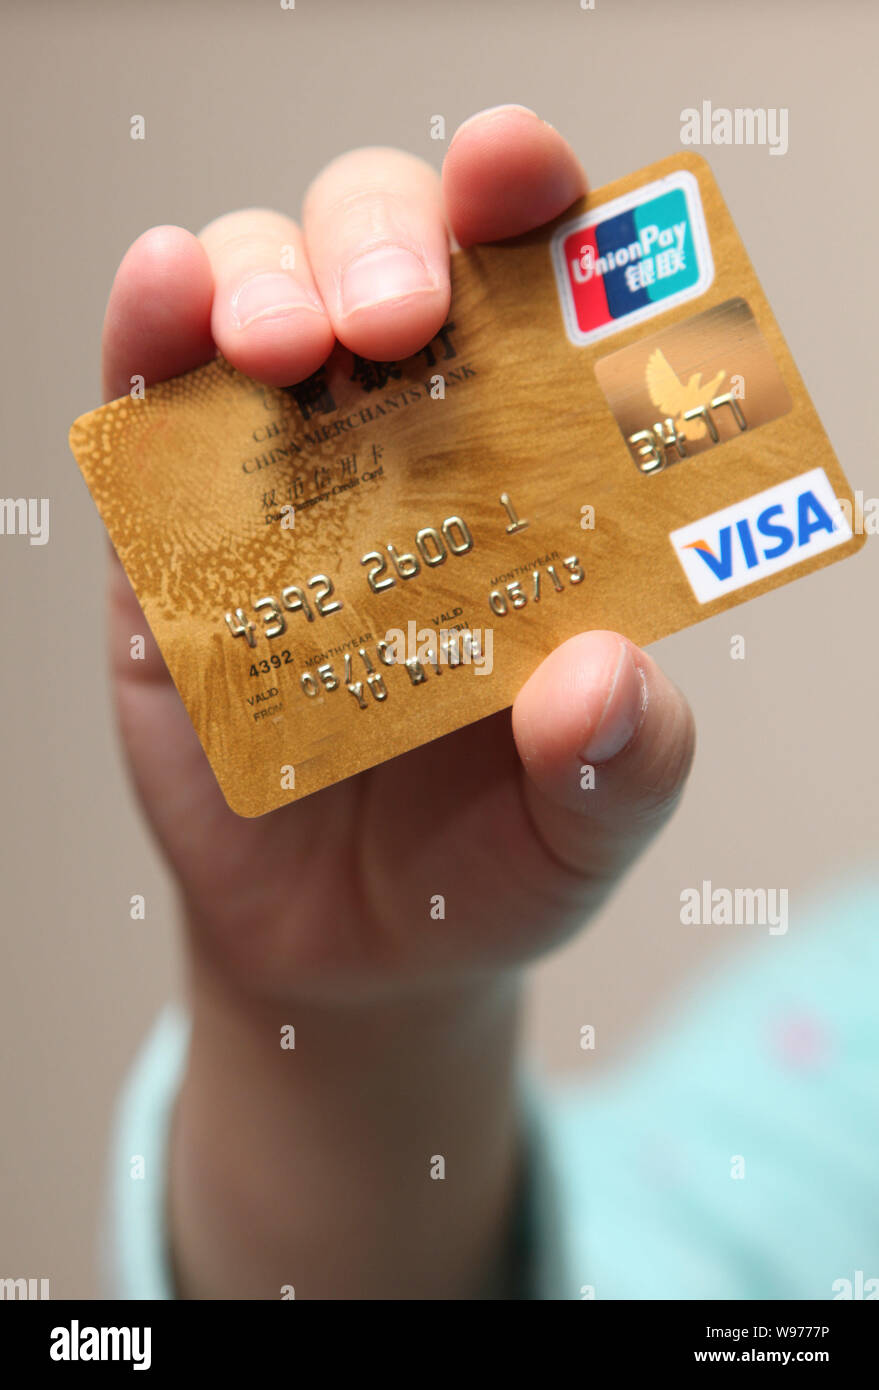 Prepaid Visa Card Stock Photos & Prepaid Visa Card Stock